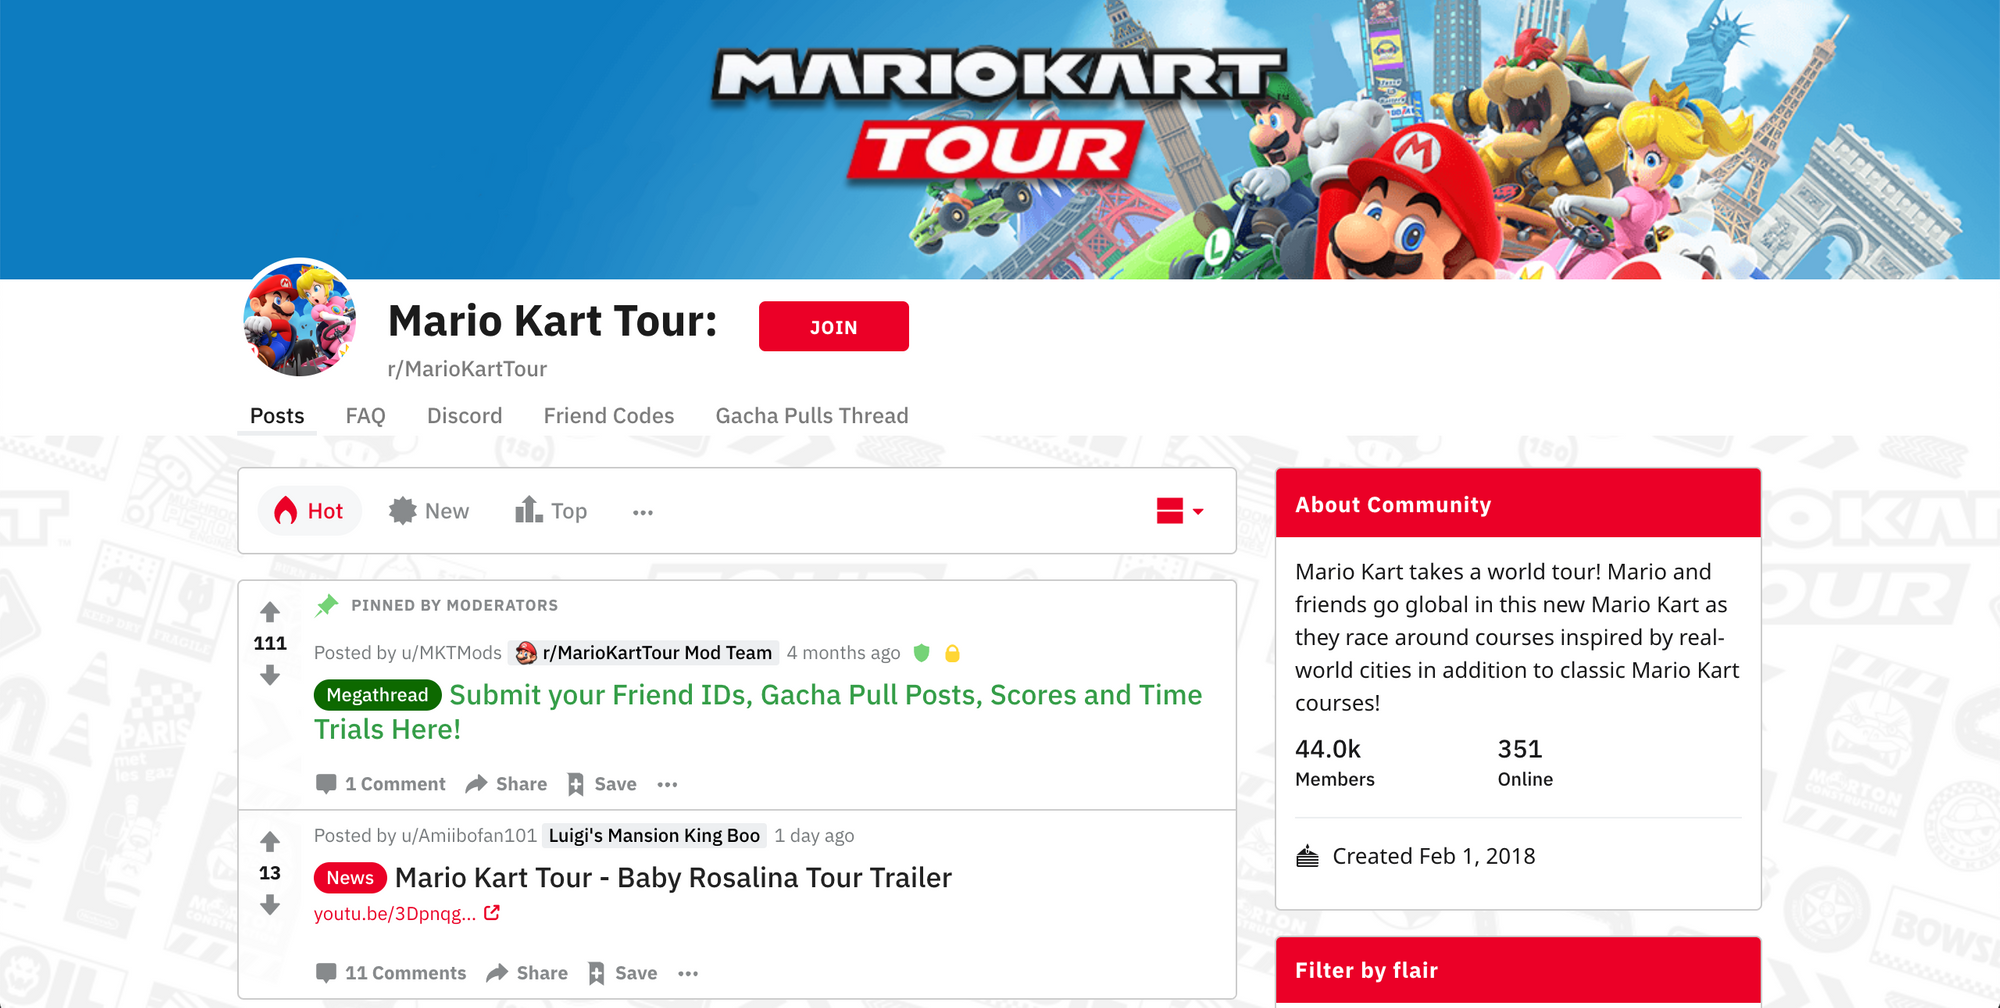 Mario Kart Tour page on Reddit